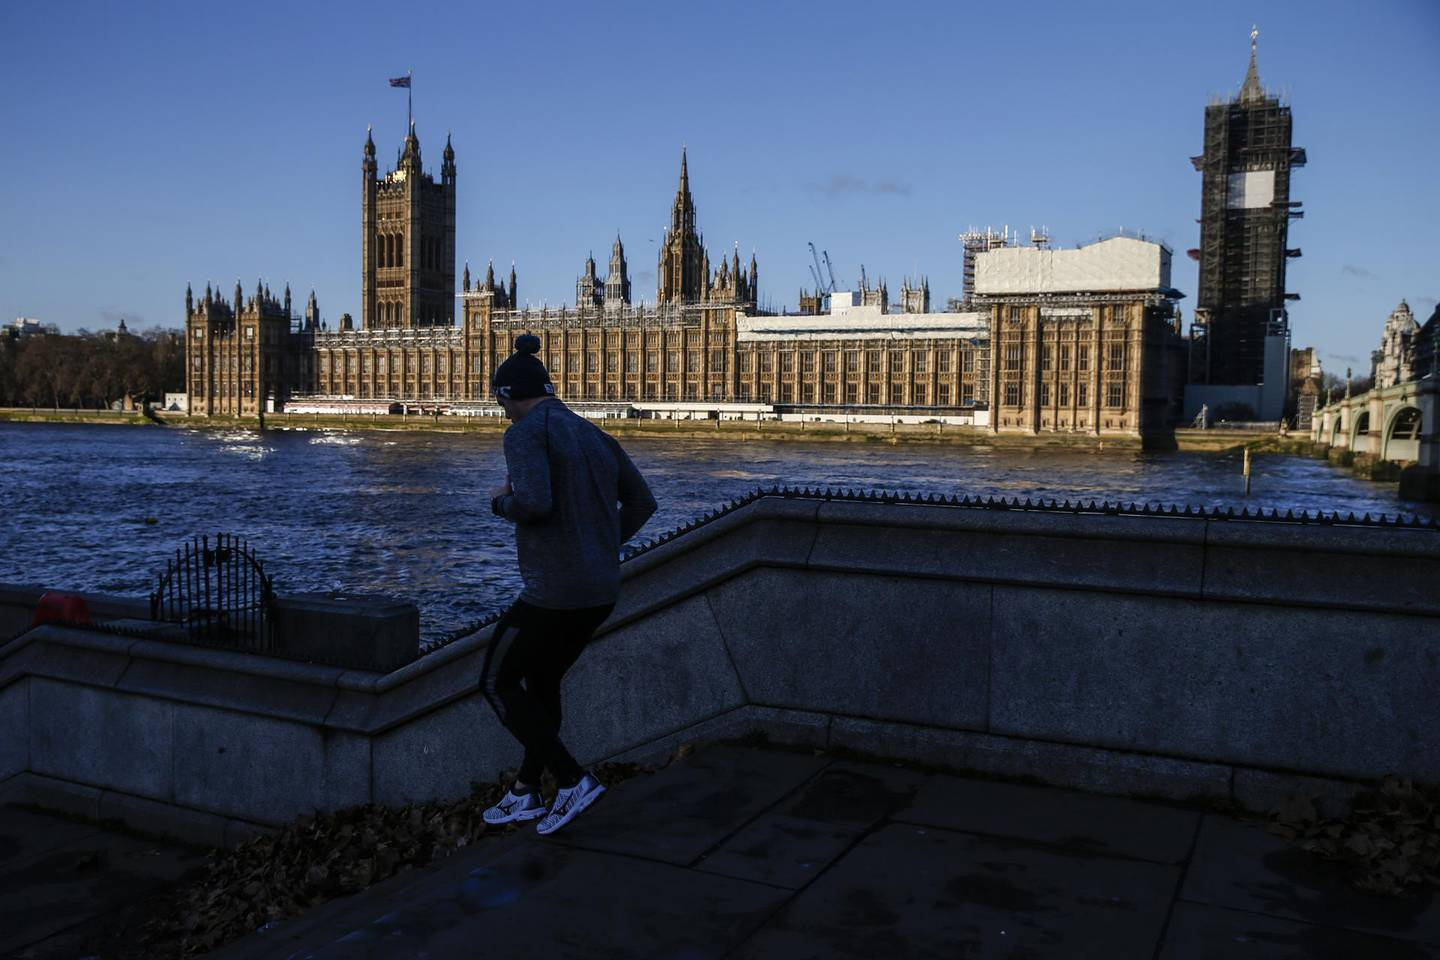 """A jogger runs along the Thames Path in view of the Houses of the Parliament in London, U.K., on Monday, Dec. 9, 2019. Prime MinisterBoris Johnsonsaid his Conservatives are putting their message across in """"every seat"""" as he goes into the final days of the U.K.'s general election campaign. Photographer: Hollie Adams/Bloomberg"""